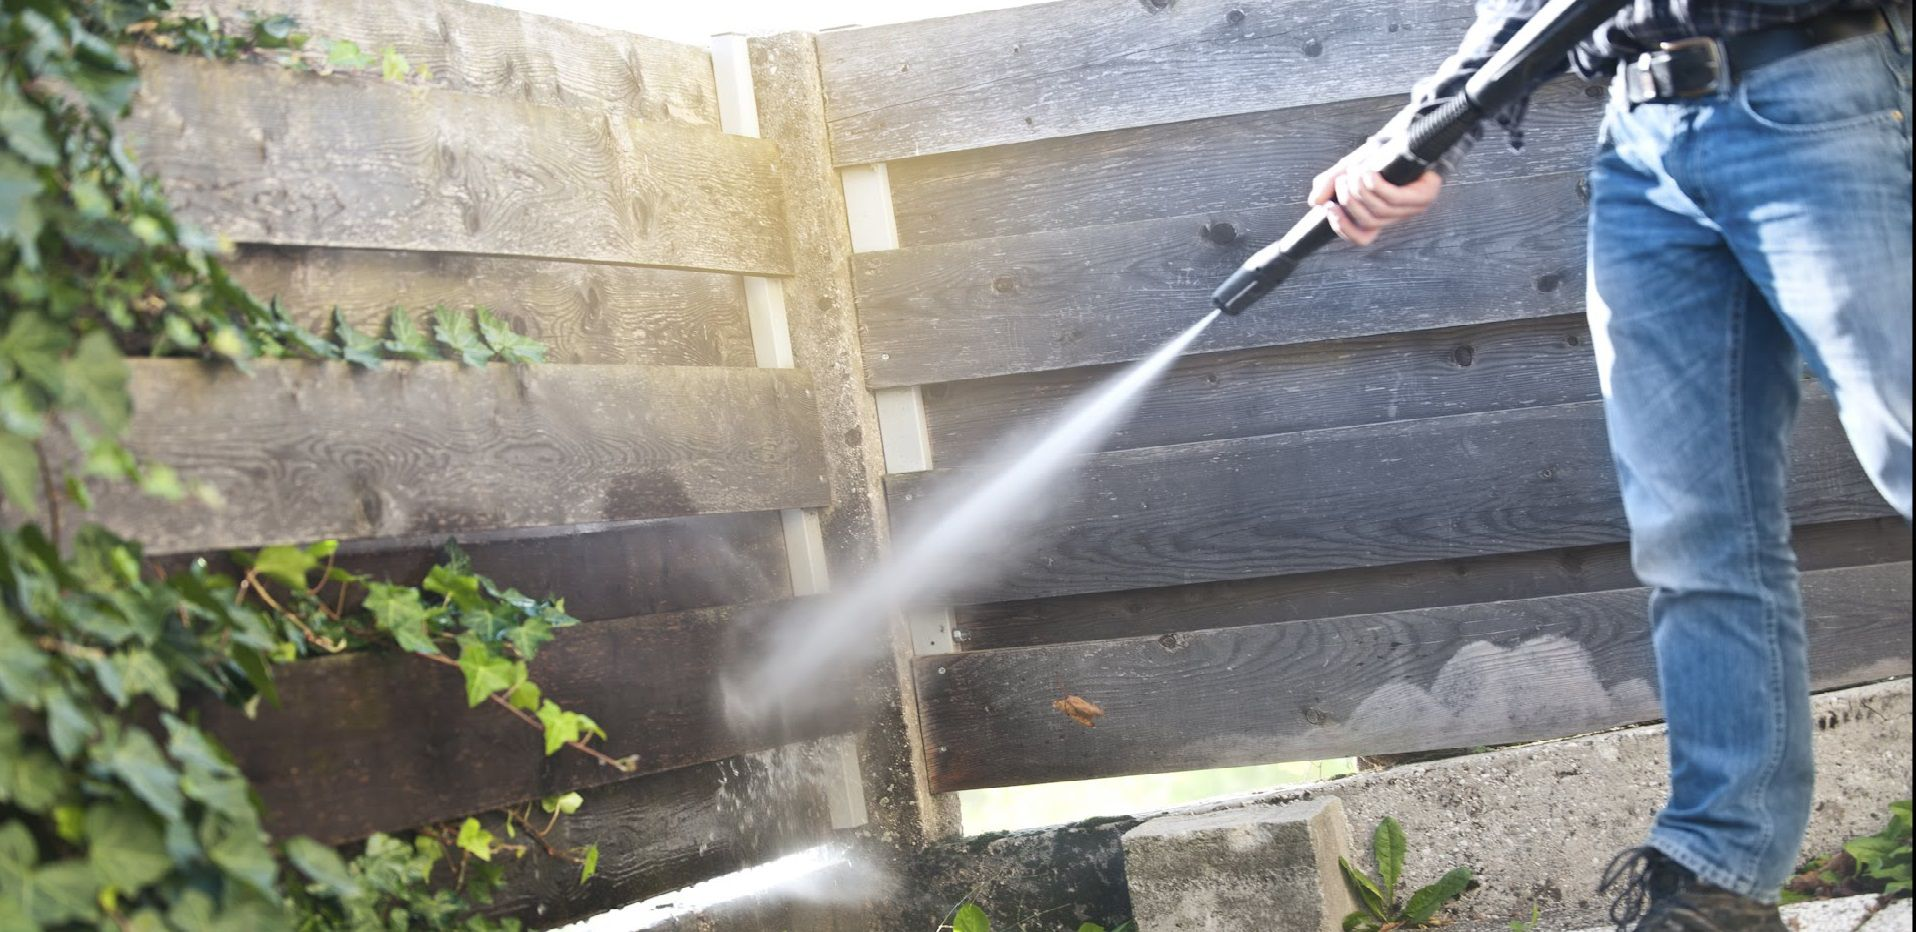 Some Things To Know About Pressure Washer